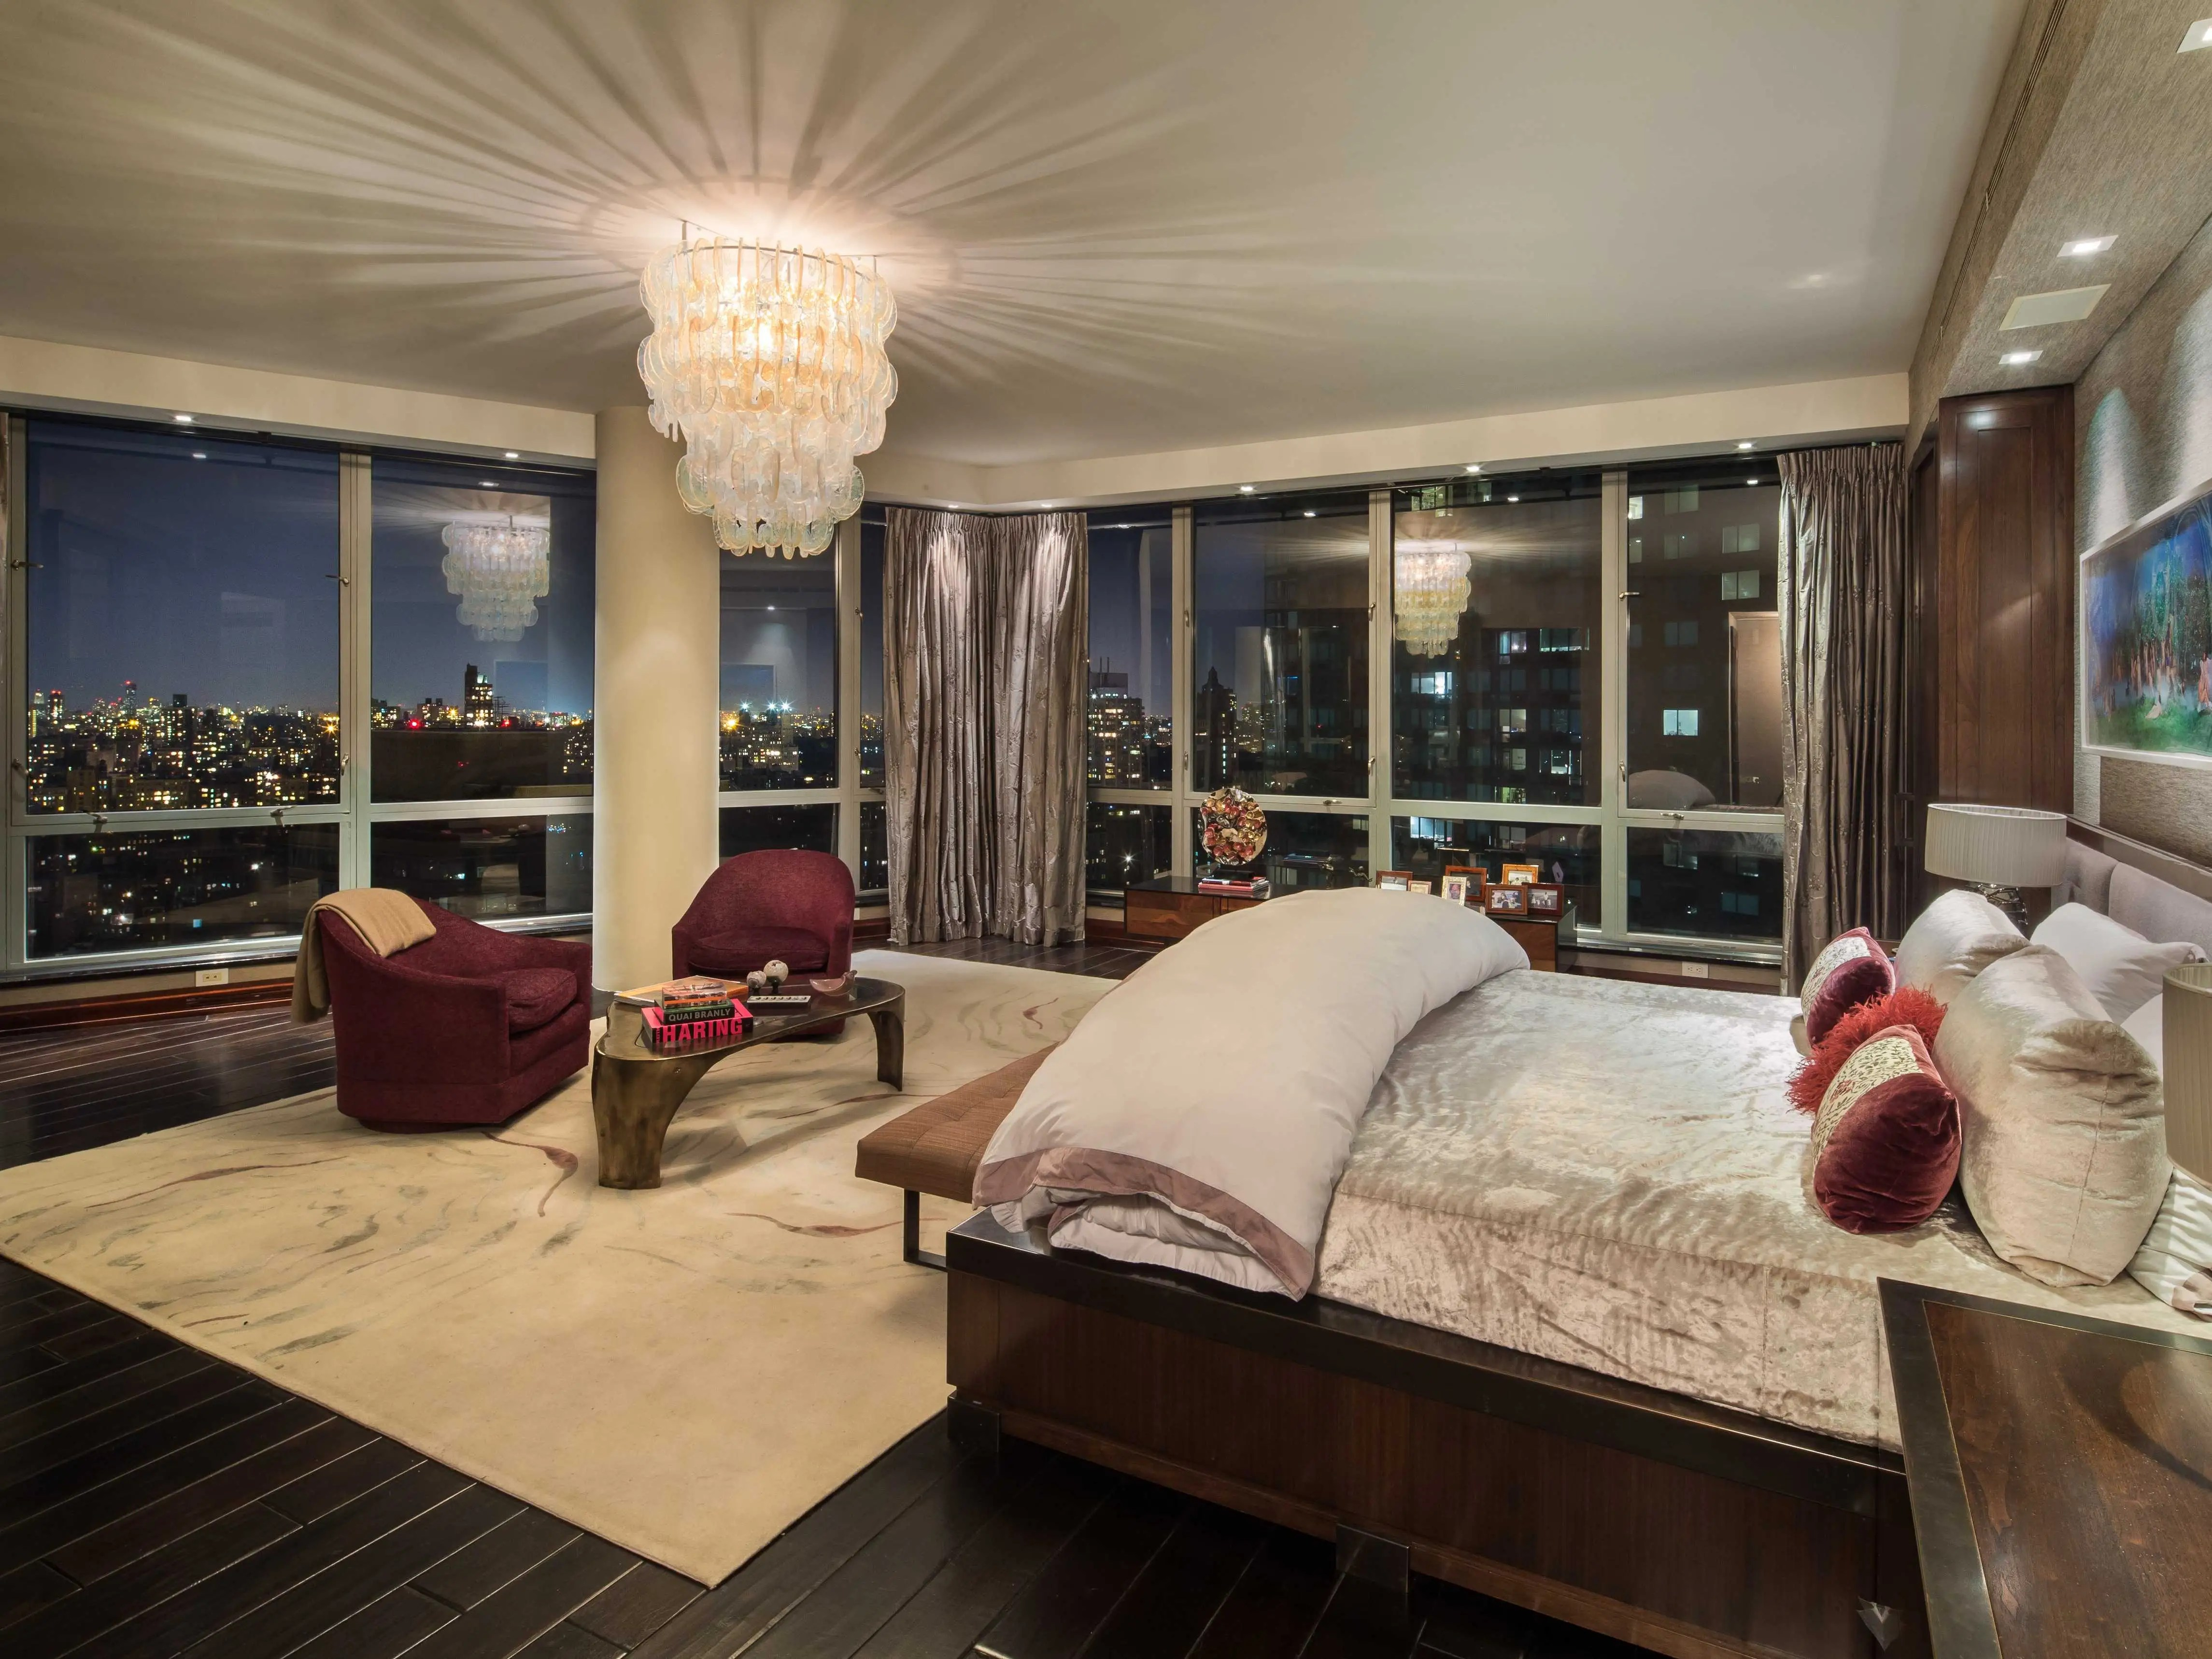 The penthouse has a grand total of eight bedrooms. The master bedroom has stunning views.